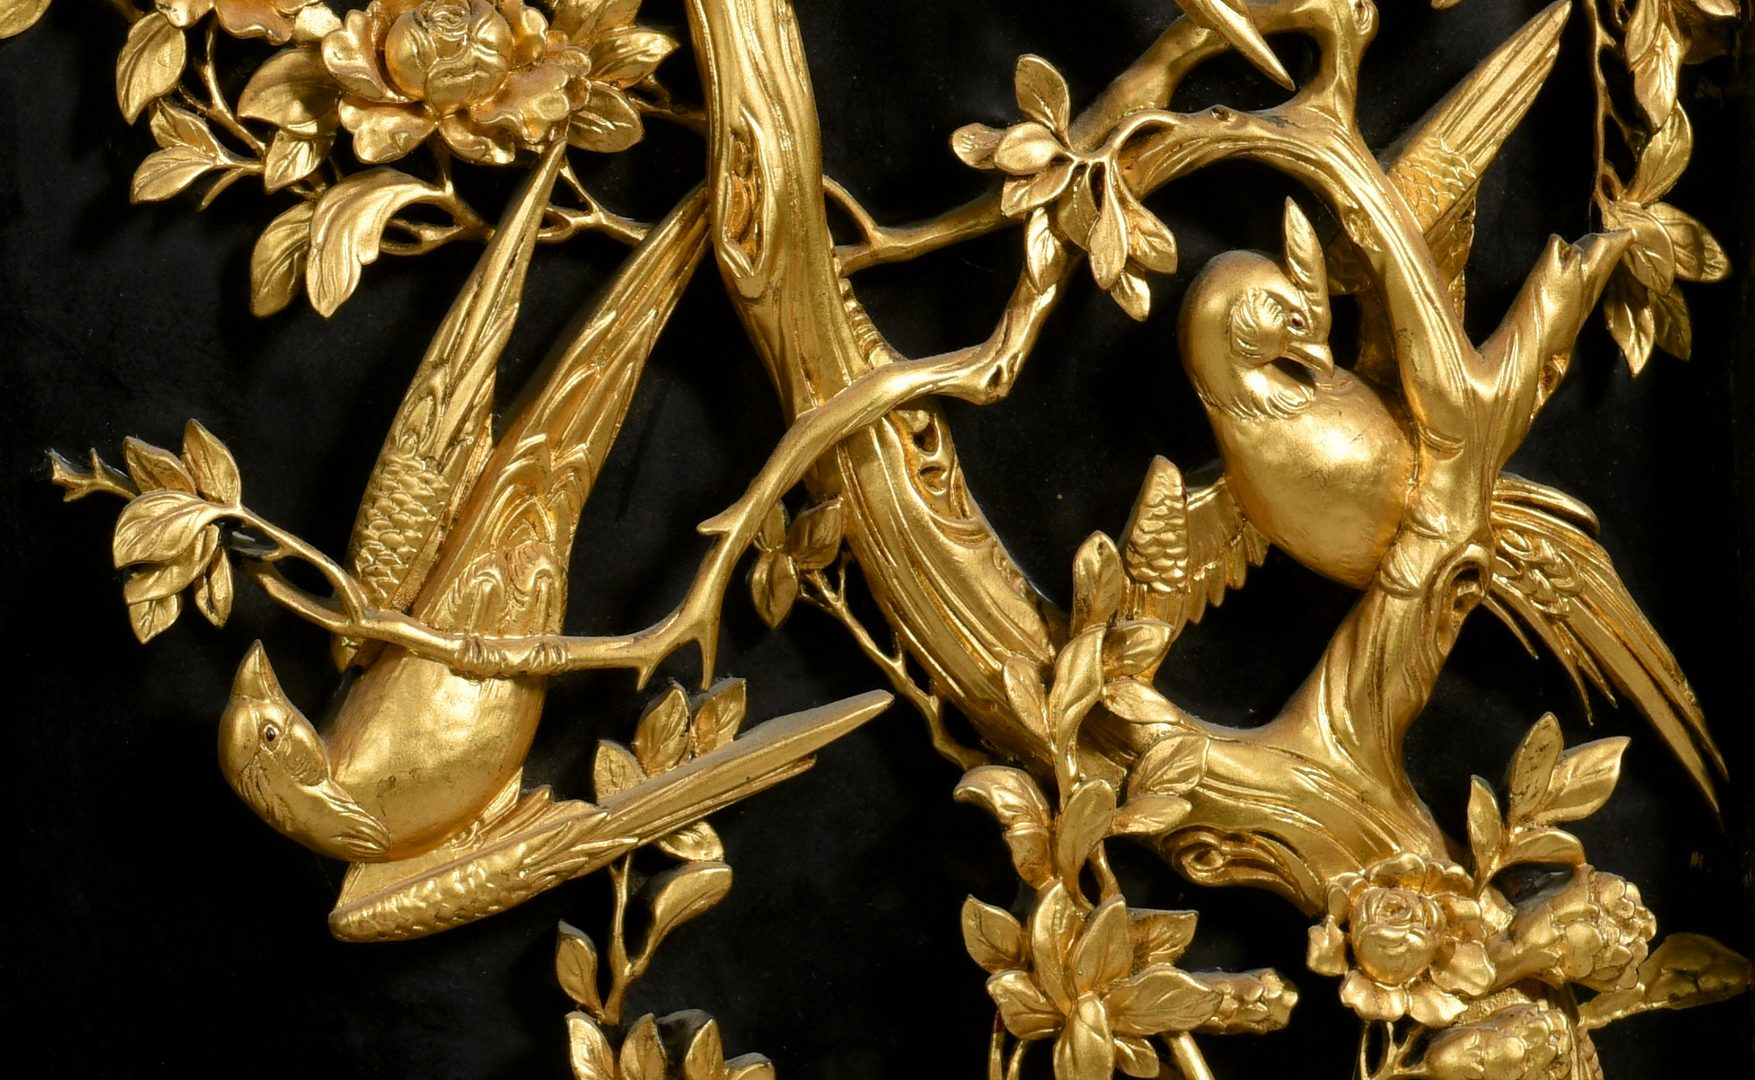 Lot 56: 4 Chinese Carved Gilt & Lacquer Wall Panels